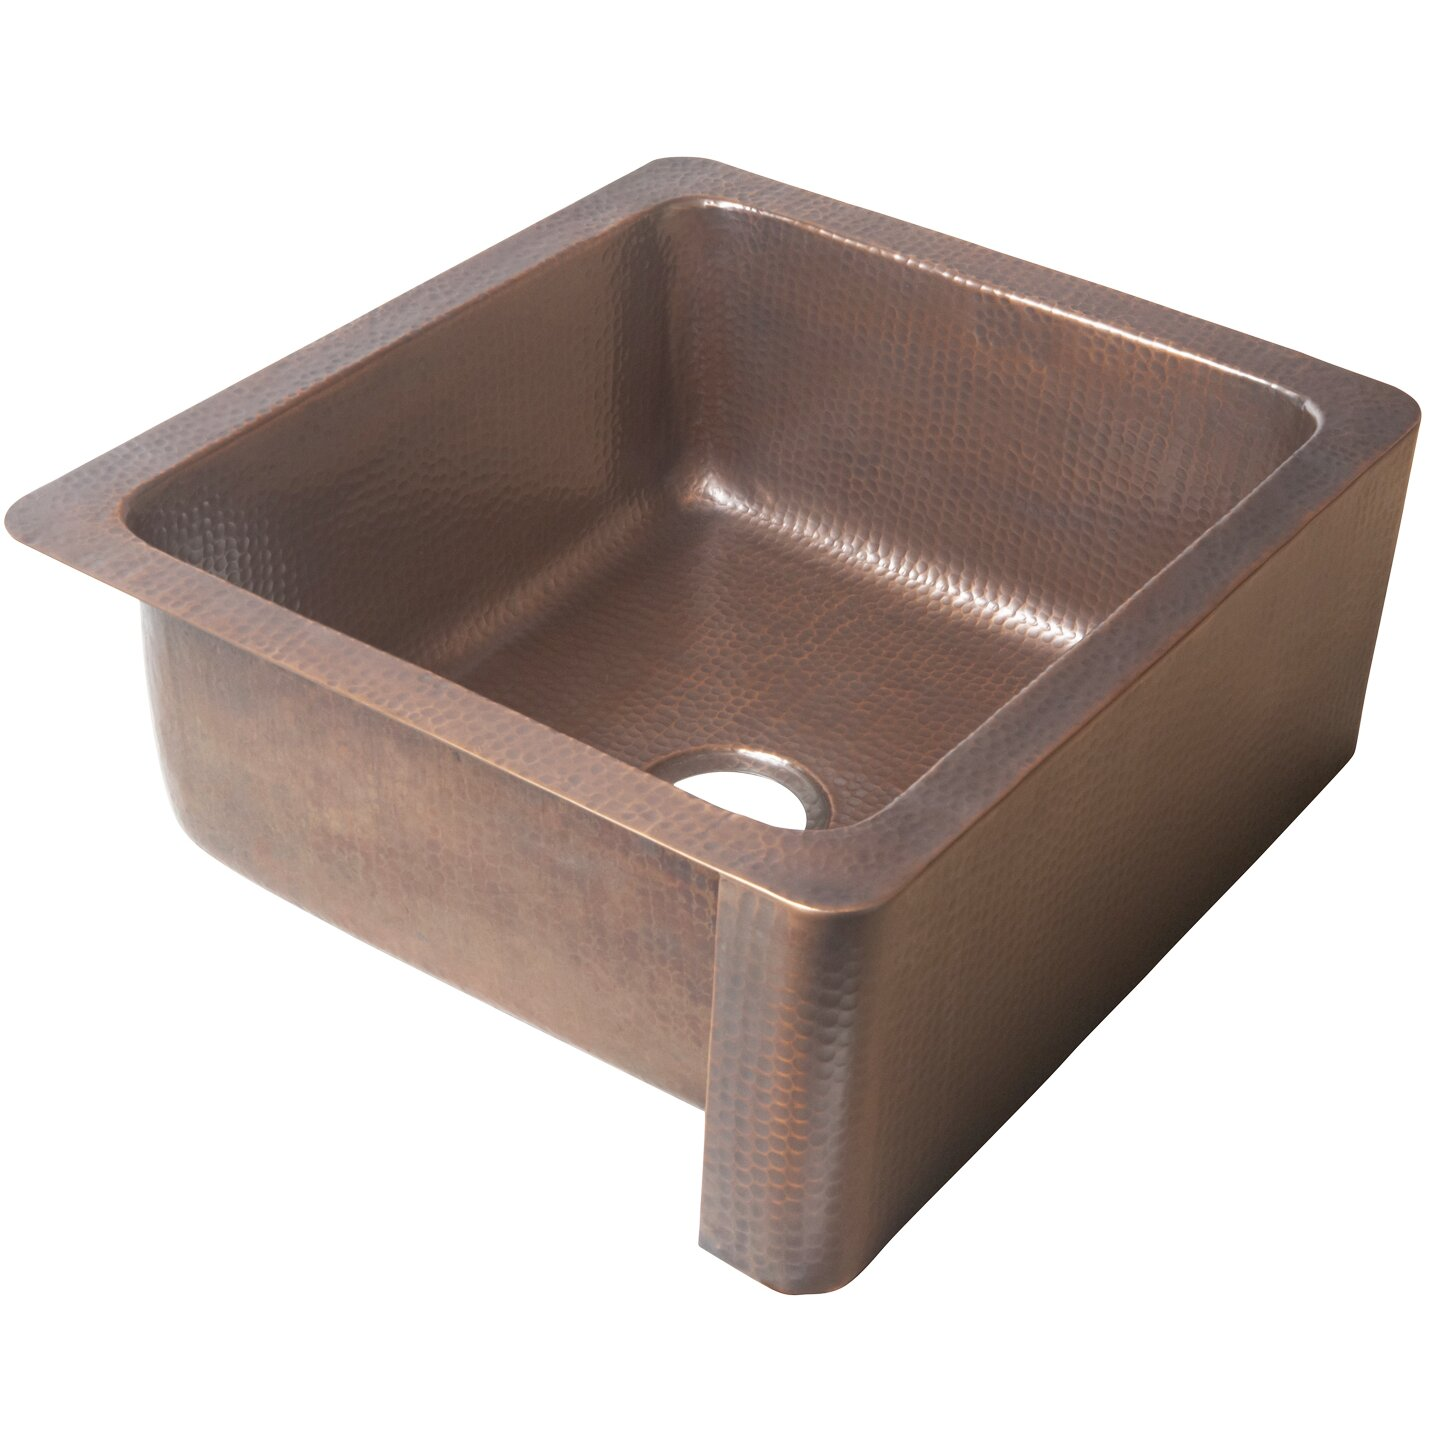 monet 25 x 22 farmhouse handmade copper kitchen sink - Copper Kitchen Sinks Reviews